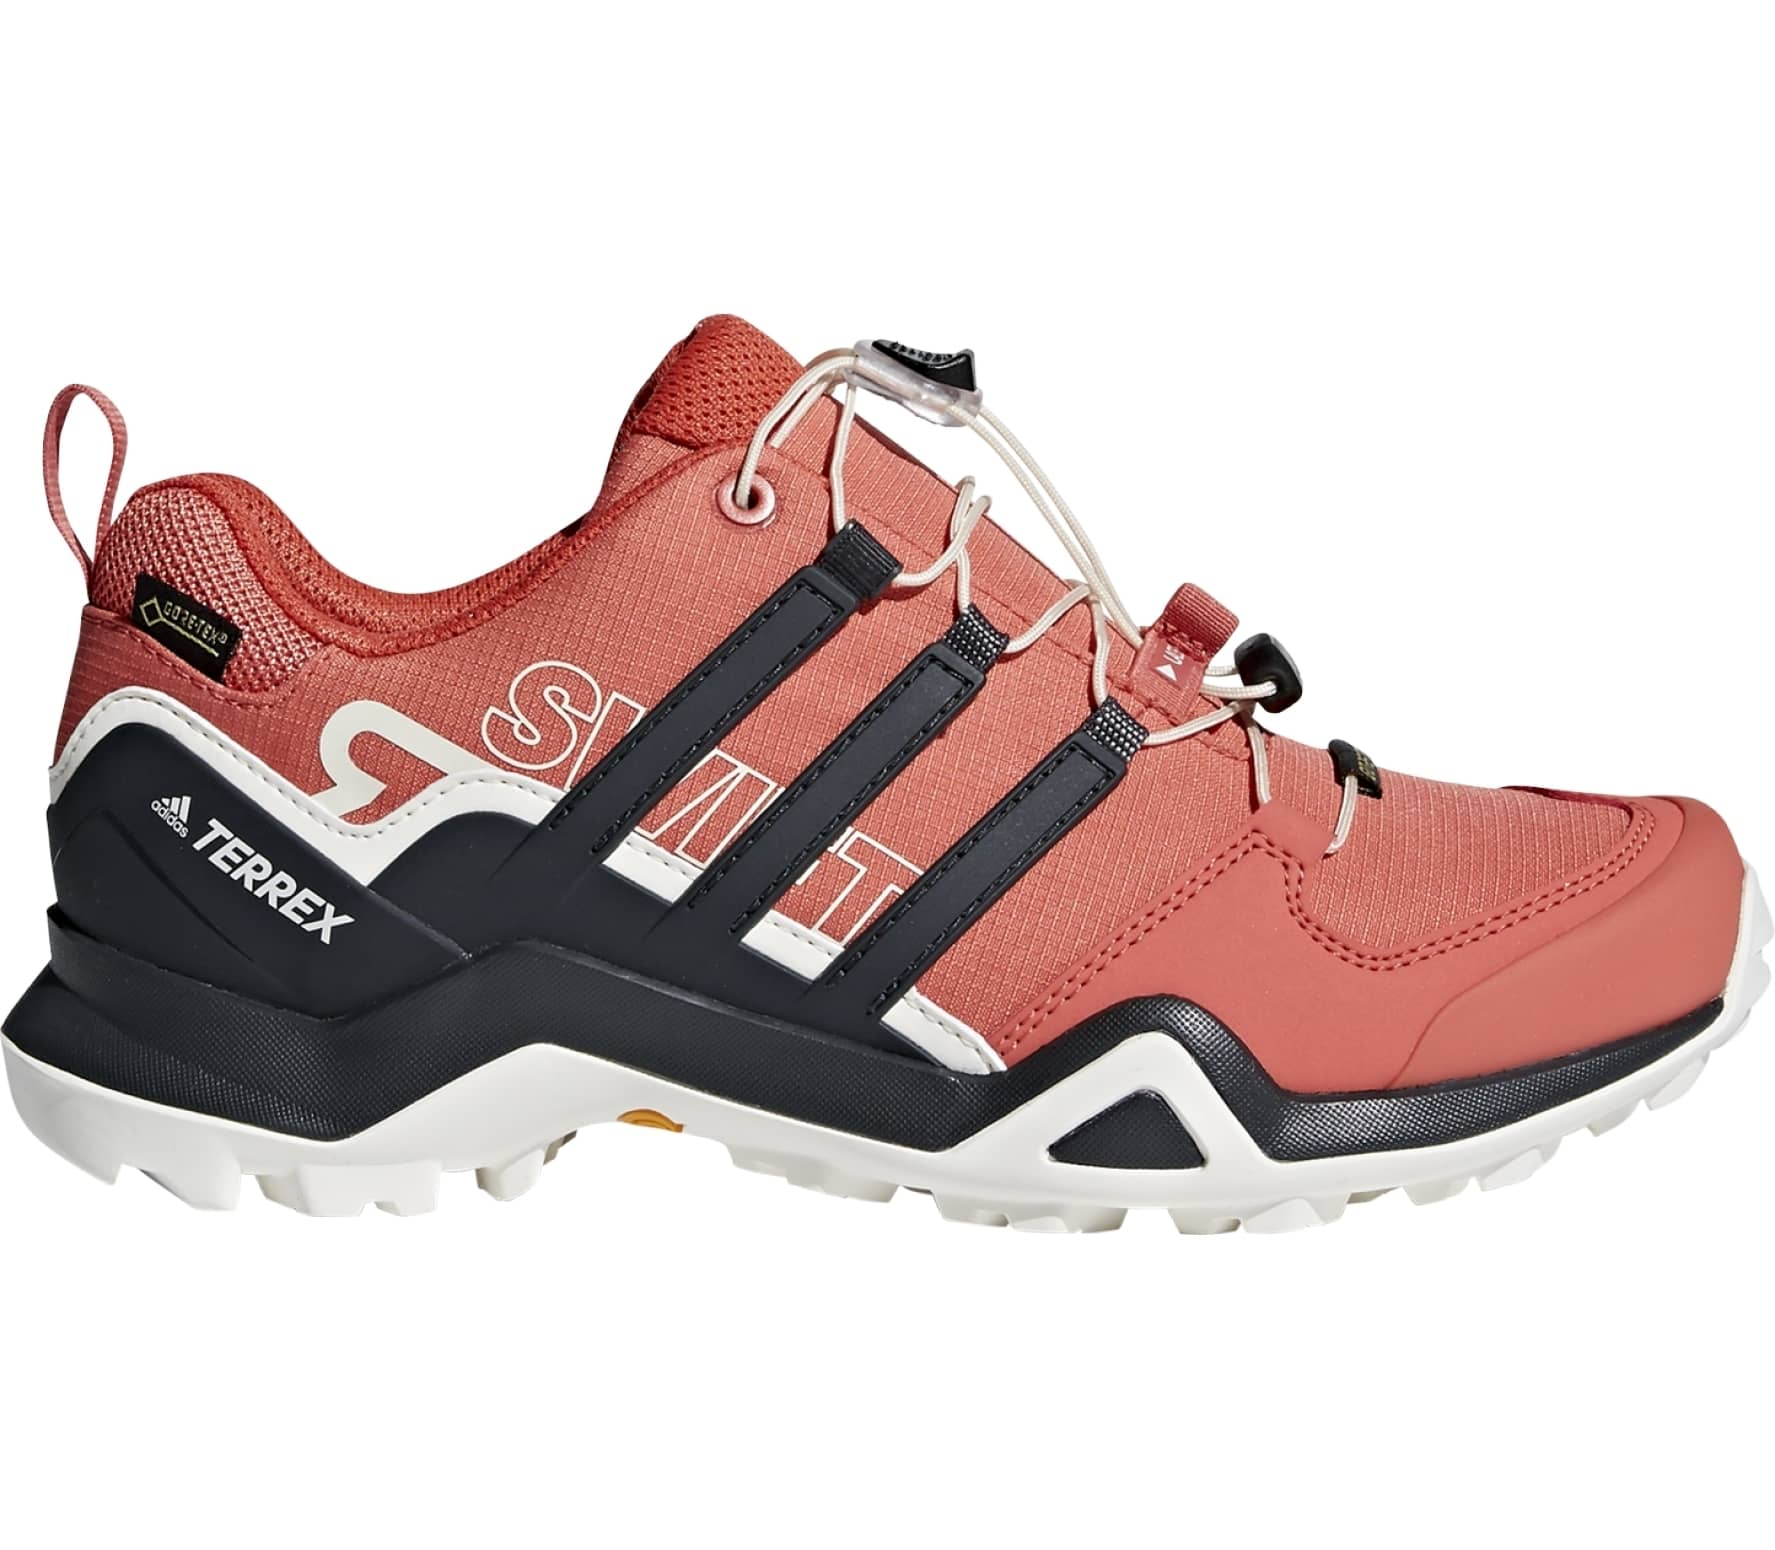 Adidas Terrex Swift R2 Gtx women's hiking shoes (orangeblack)